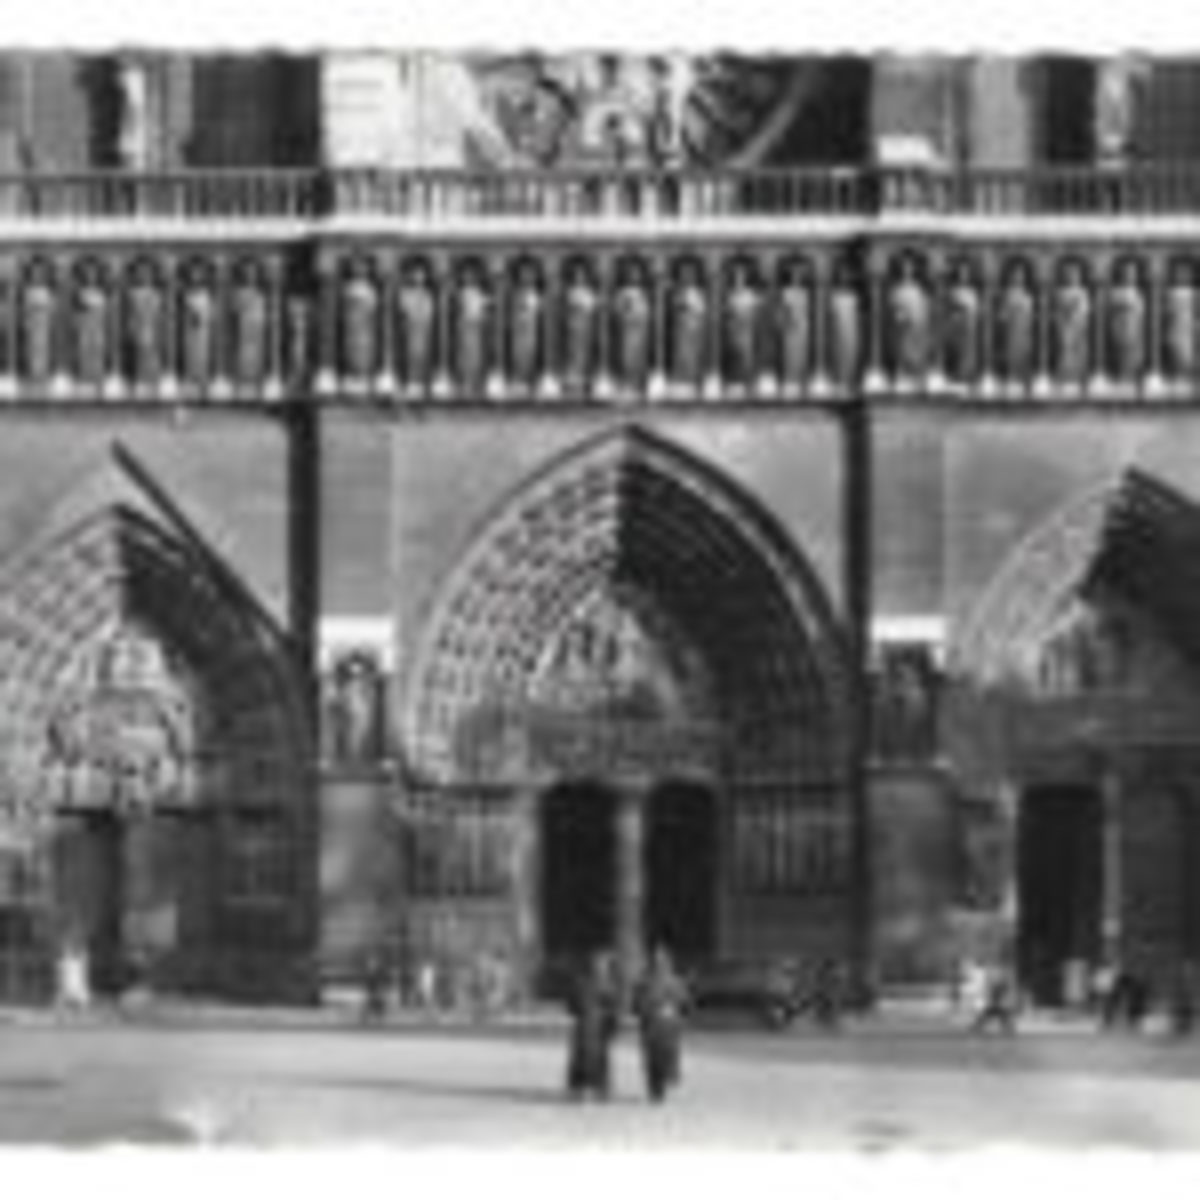 Glossy Yvon realphoto postcard with deckled edges showing portals on the west façade of Notre-Dame de Paris.